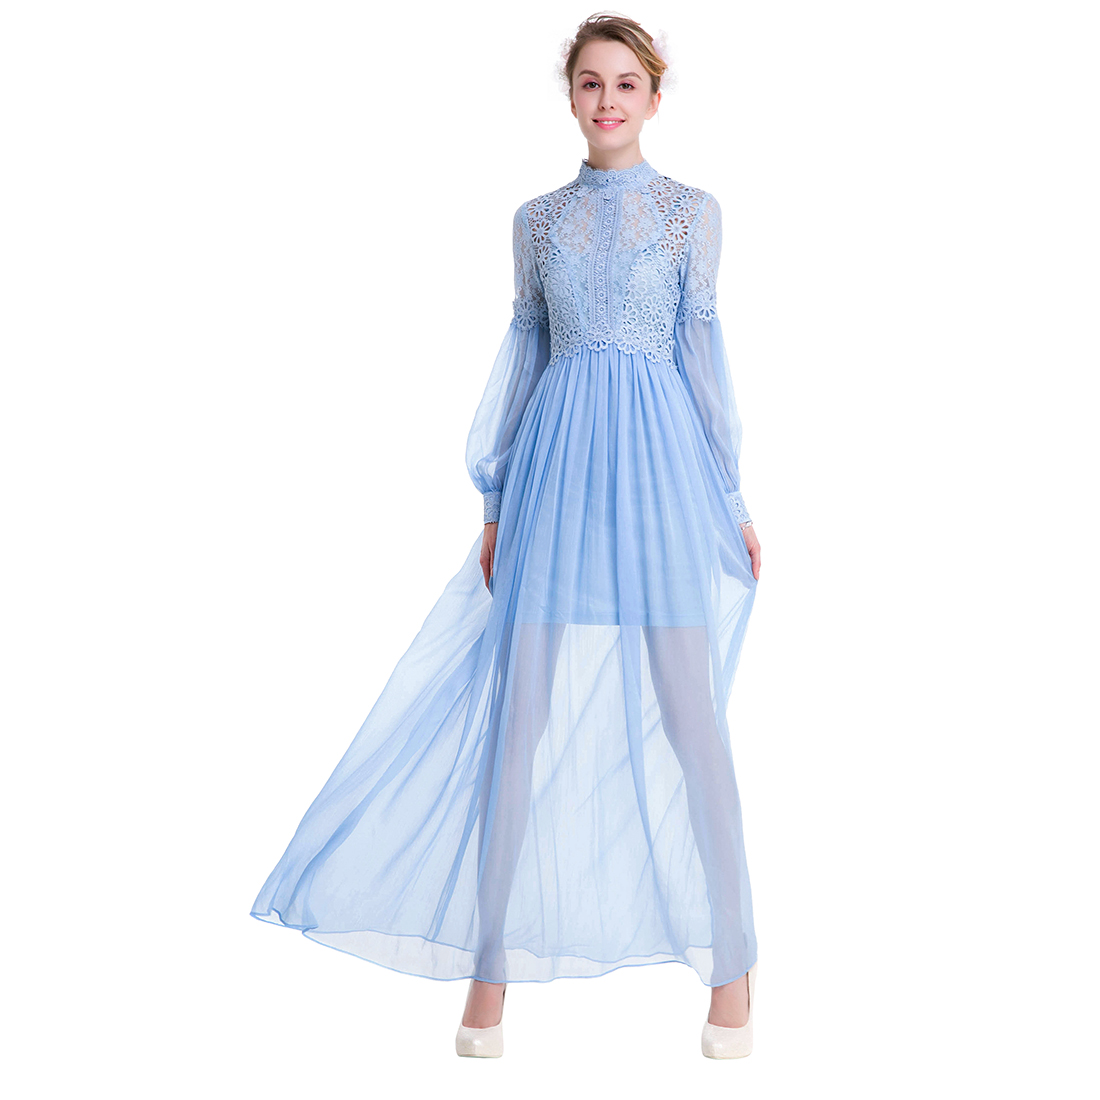 TFGS Original Design Women Original Design Spring Lace Chiffon Two Piece Dress For Women Vintage Hollow